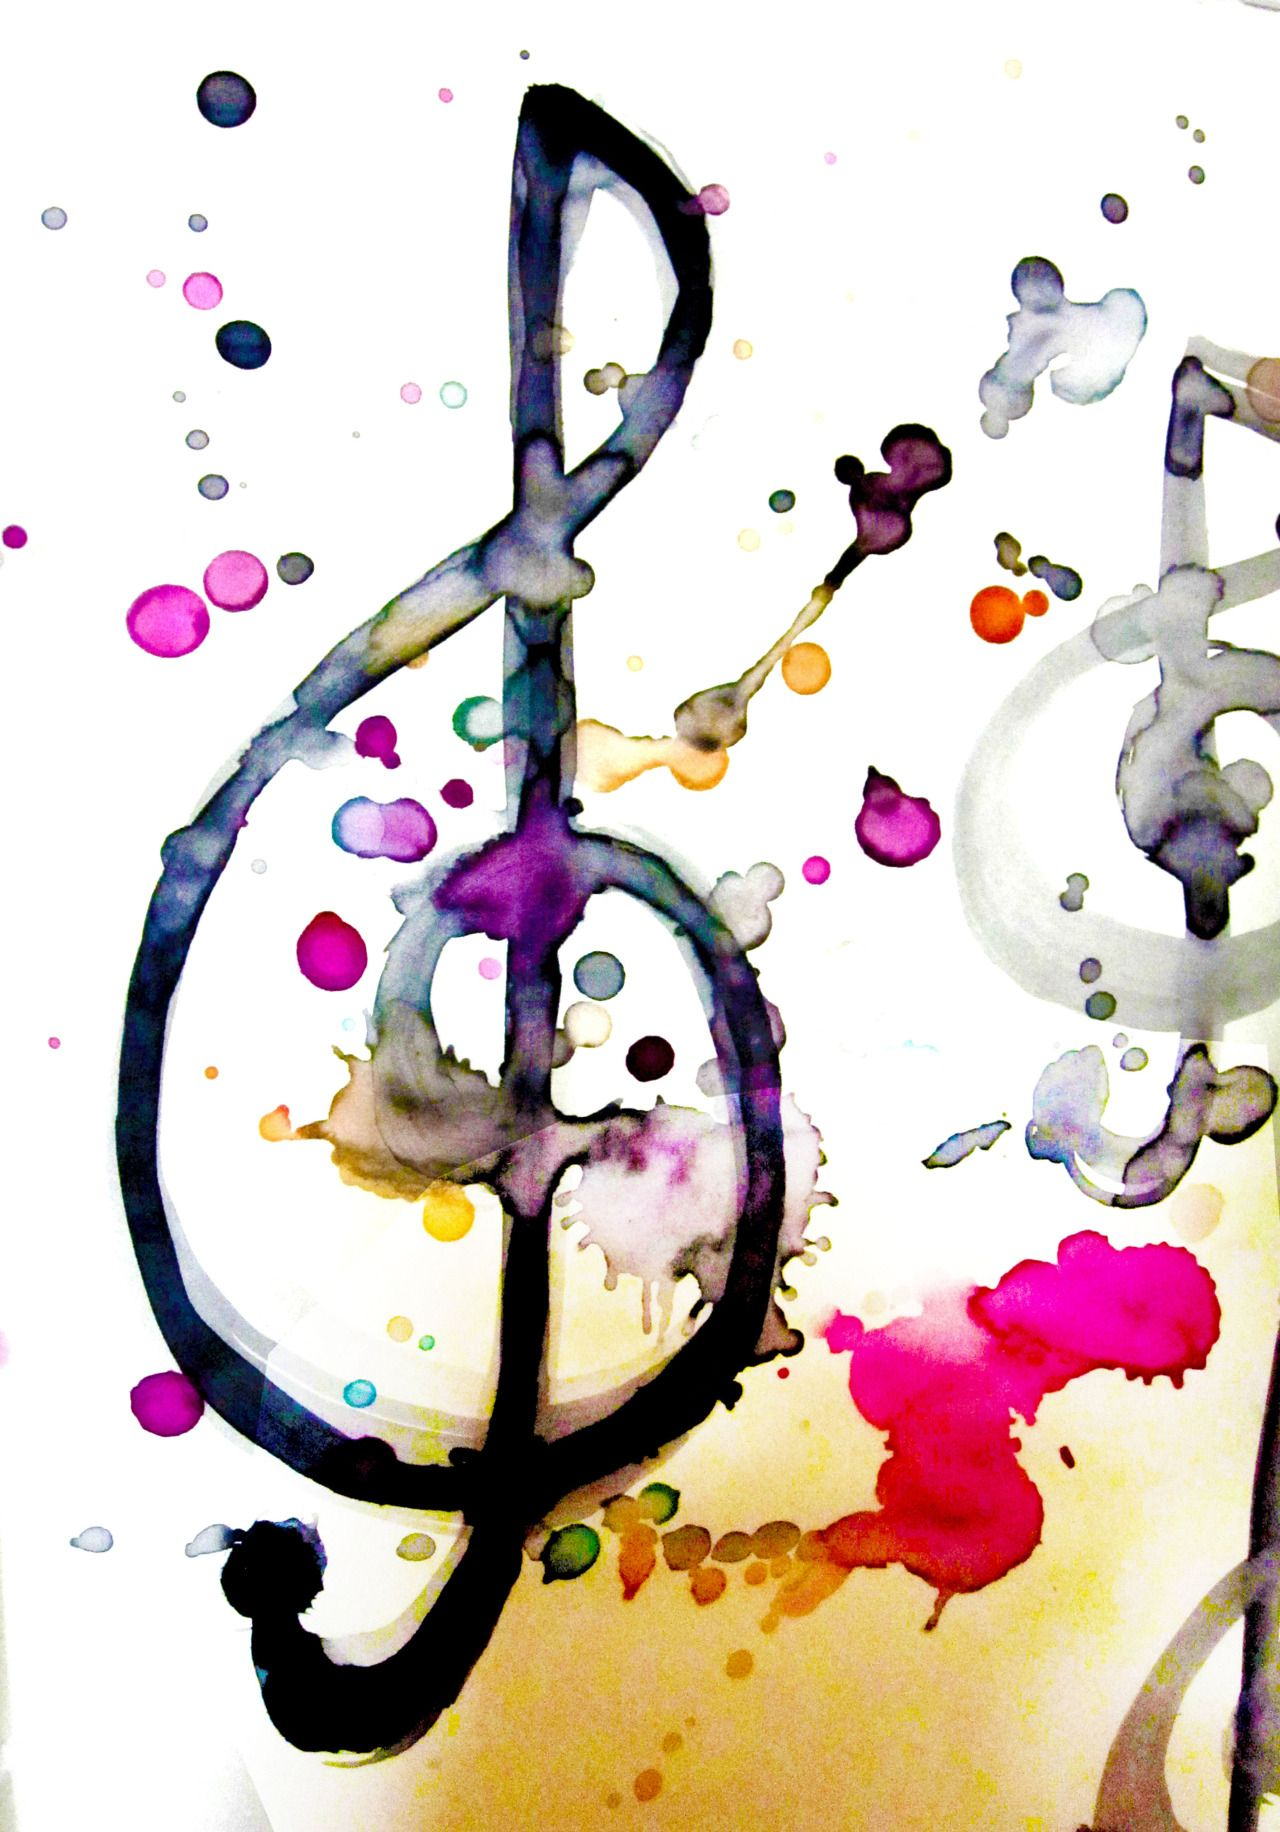 Download Wallpaper Music Watercolor - c42d3926b430da45702804fb20262eae  HD_174313.jpg